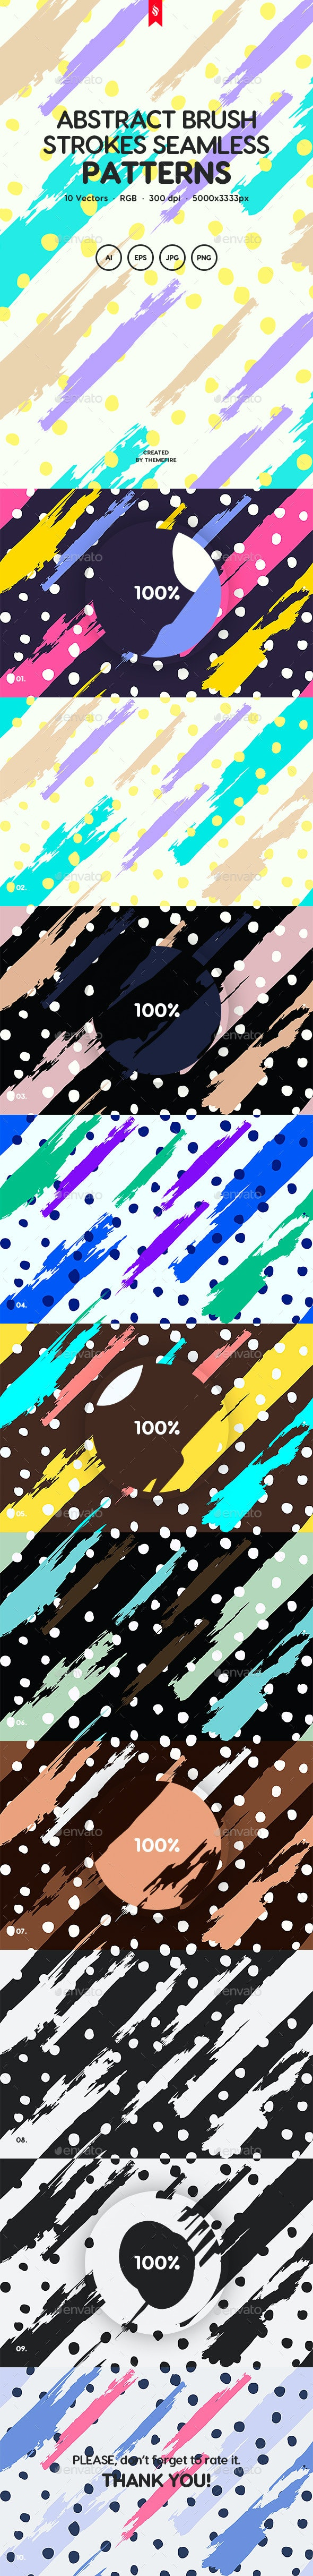 Brush Strokes with Dots Seamless Patterns - Backgrounds Graphics